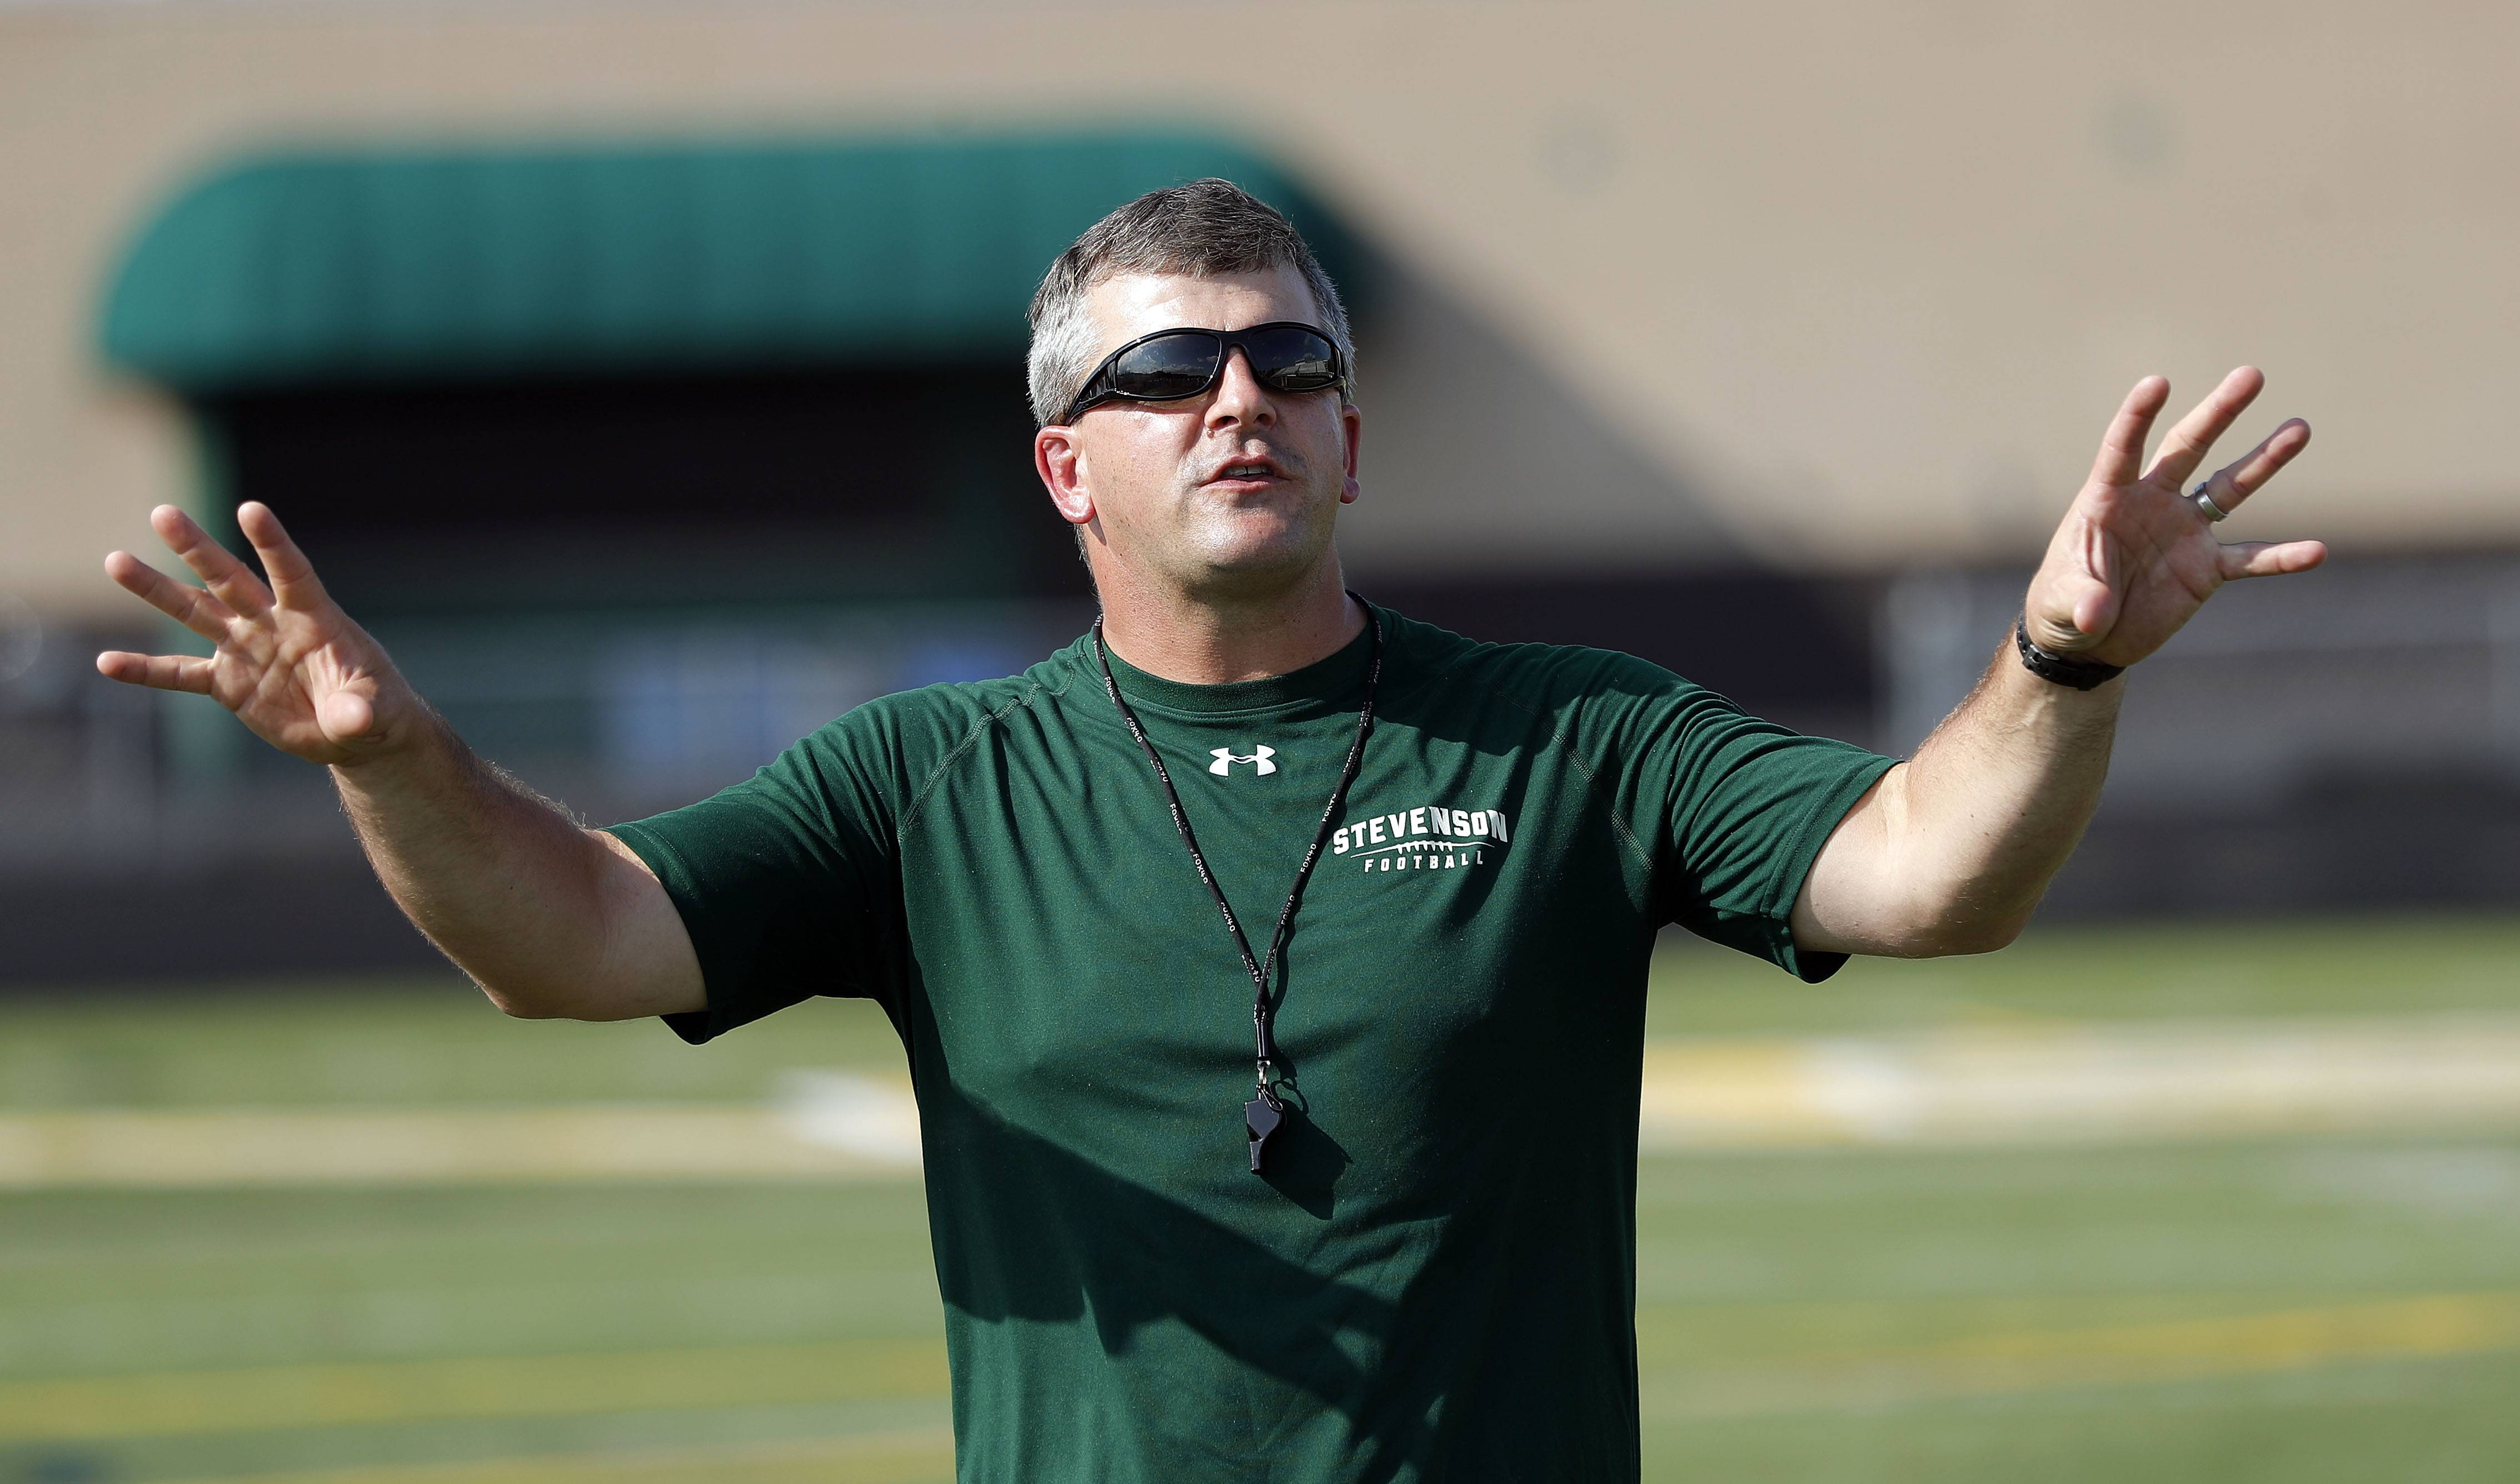 Stevenson's Josh Hjorth, who has four children under the age of 8, has stepped as Stevenson's head football coach after two seasons.